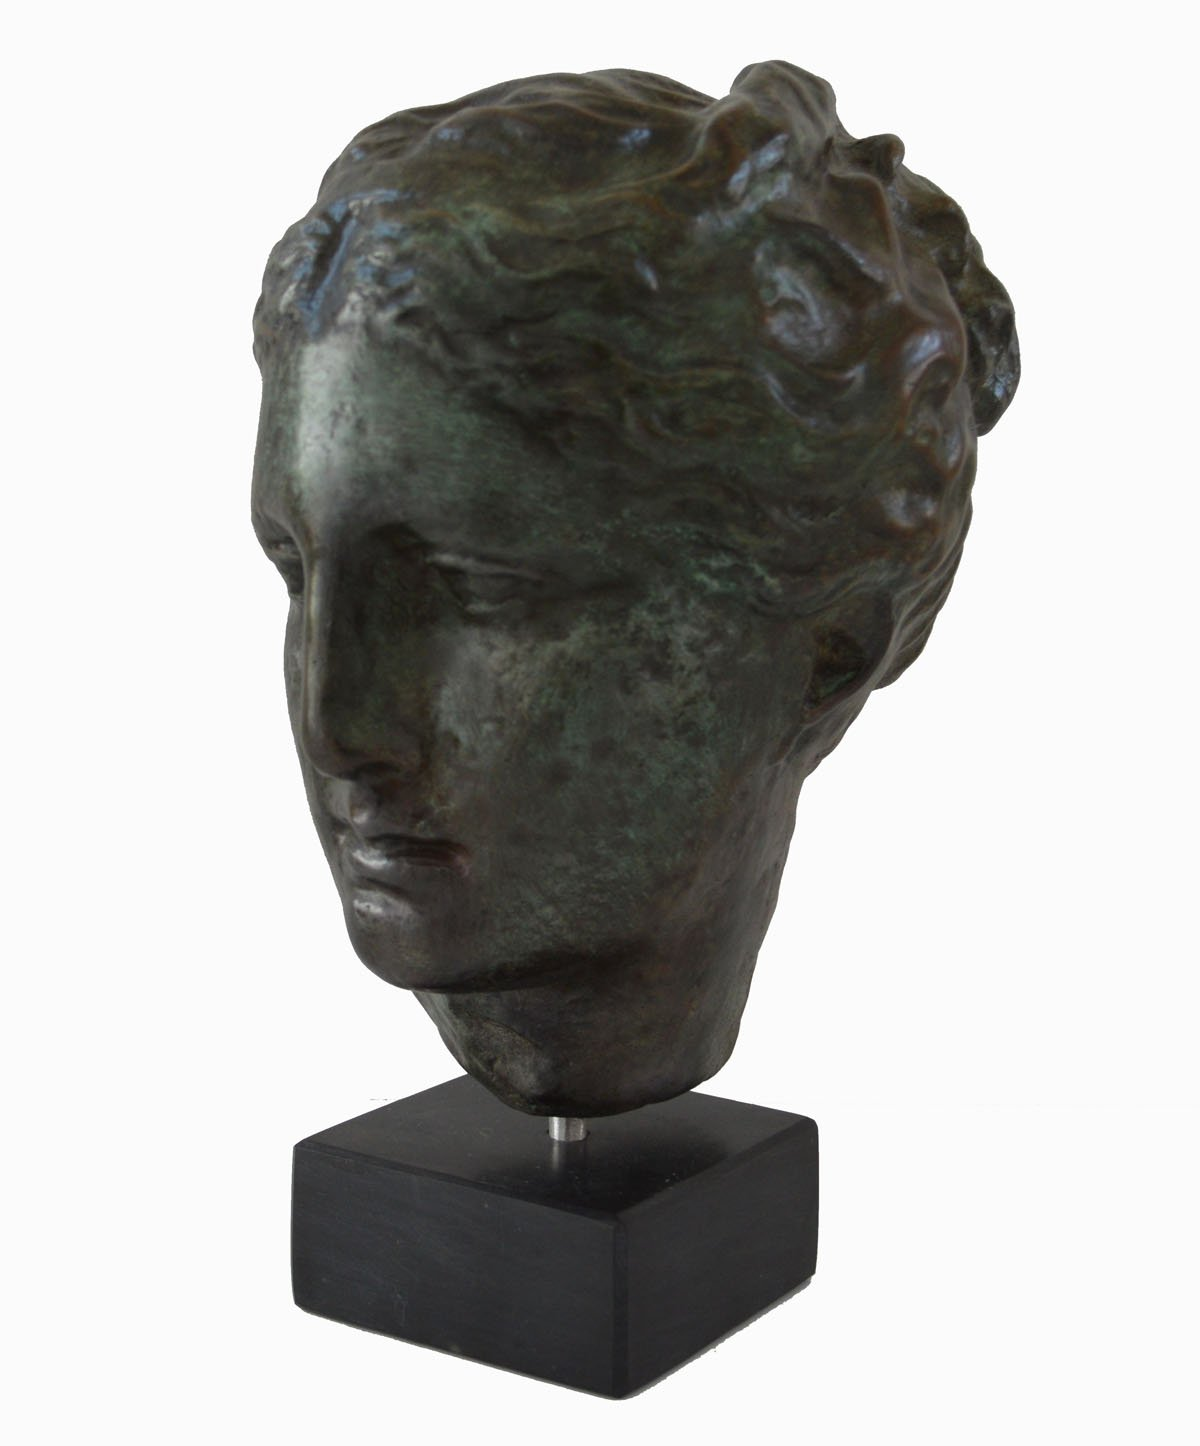 Hygieia bust with bronze color effect - Ancient Greek Goddess of health Hygeia - museum replica by Estia Creations (Image #3)